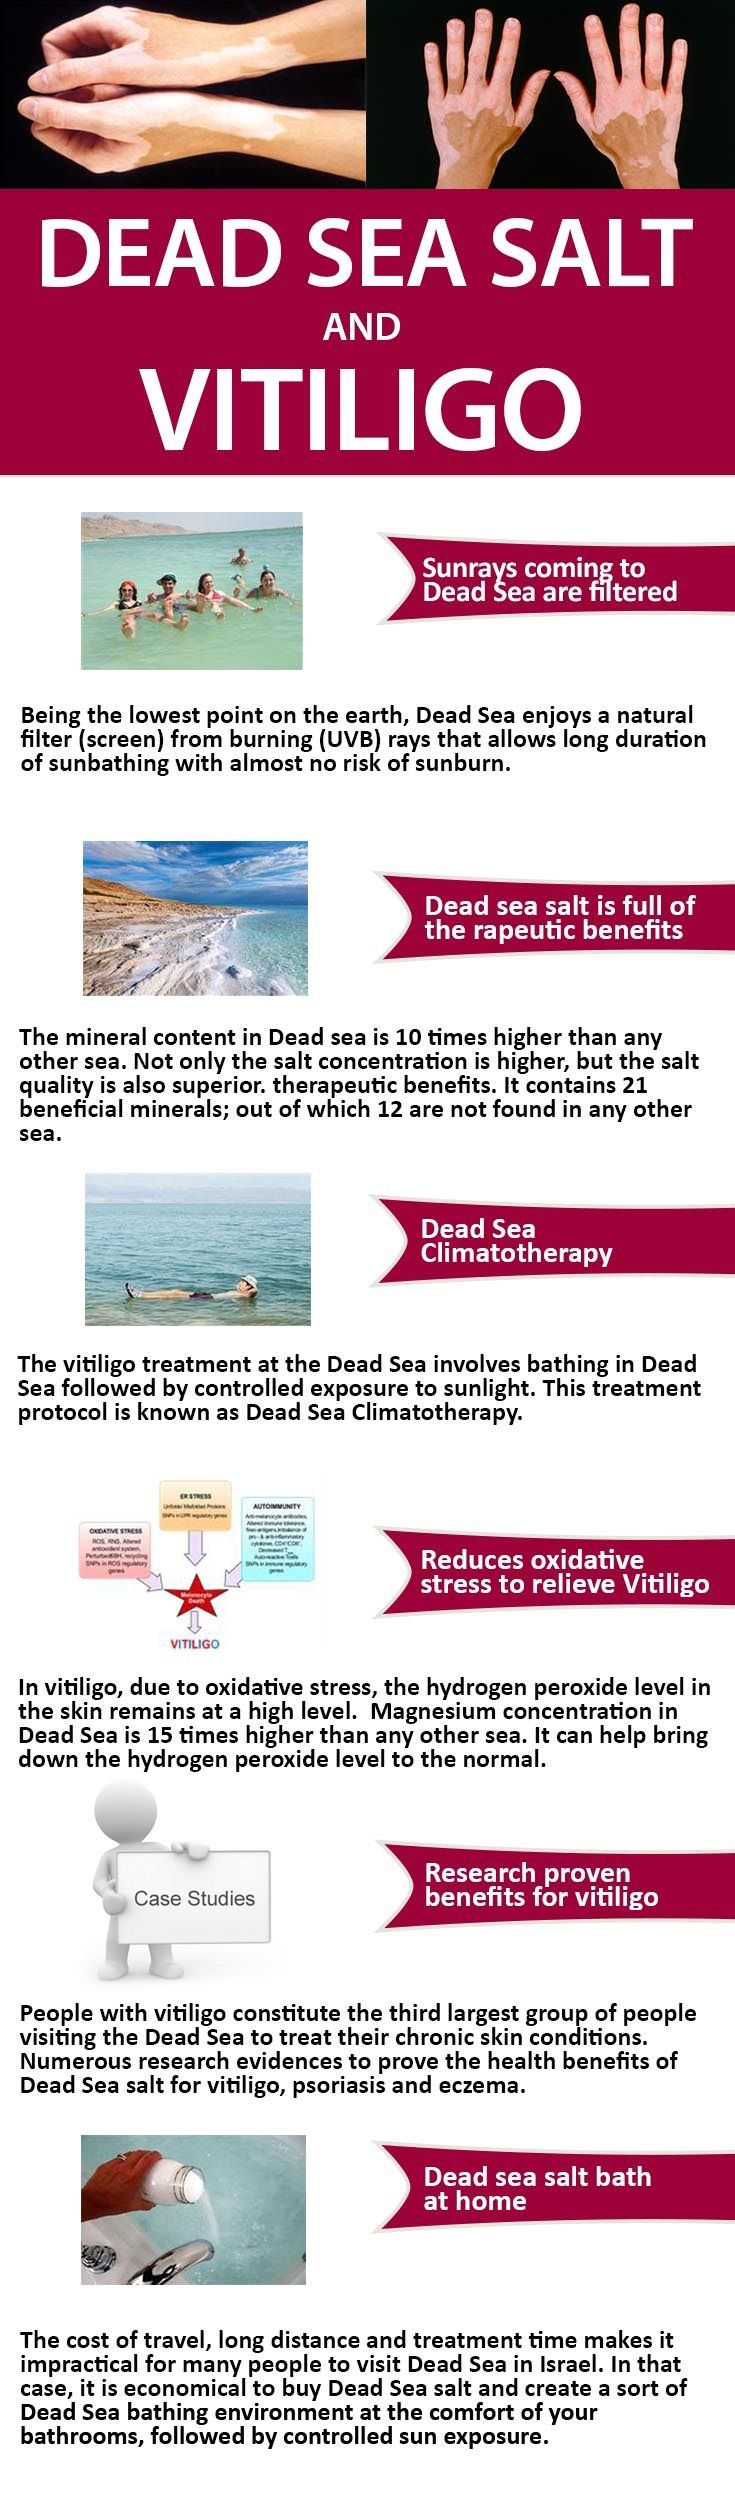 During soaking in water mixed with Dead Sea salt, the